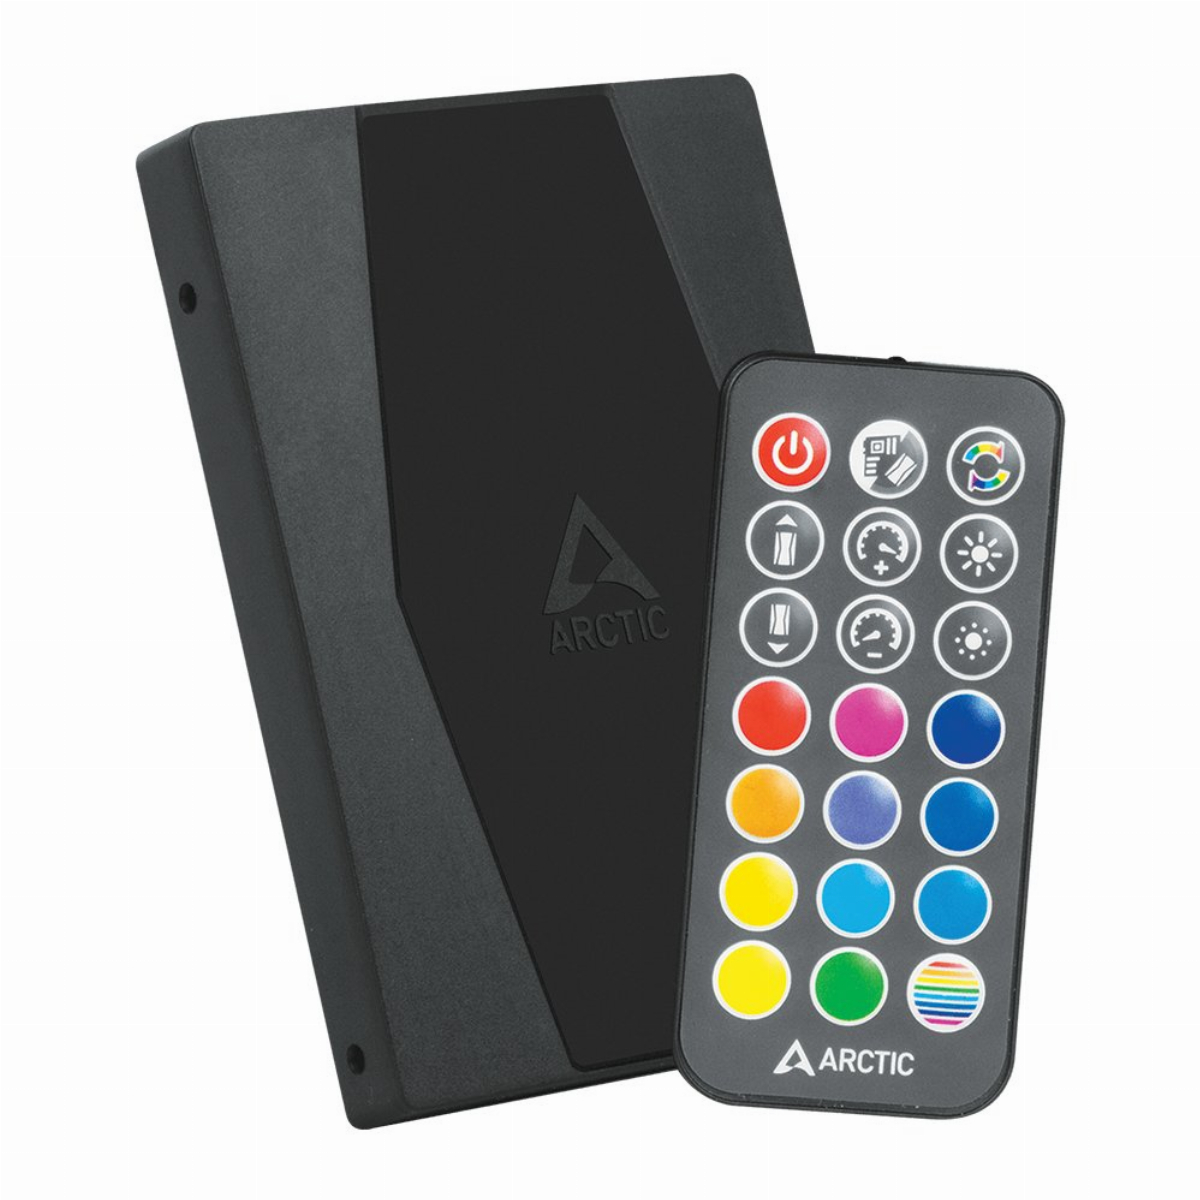 Контролер Arctic A-RGB controller with RF remote control - ACFAN00180A